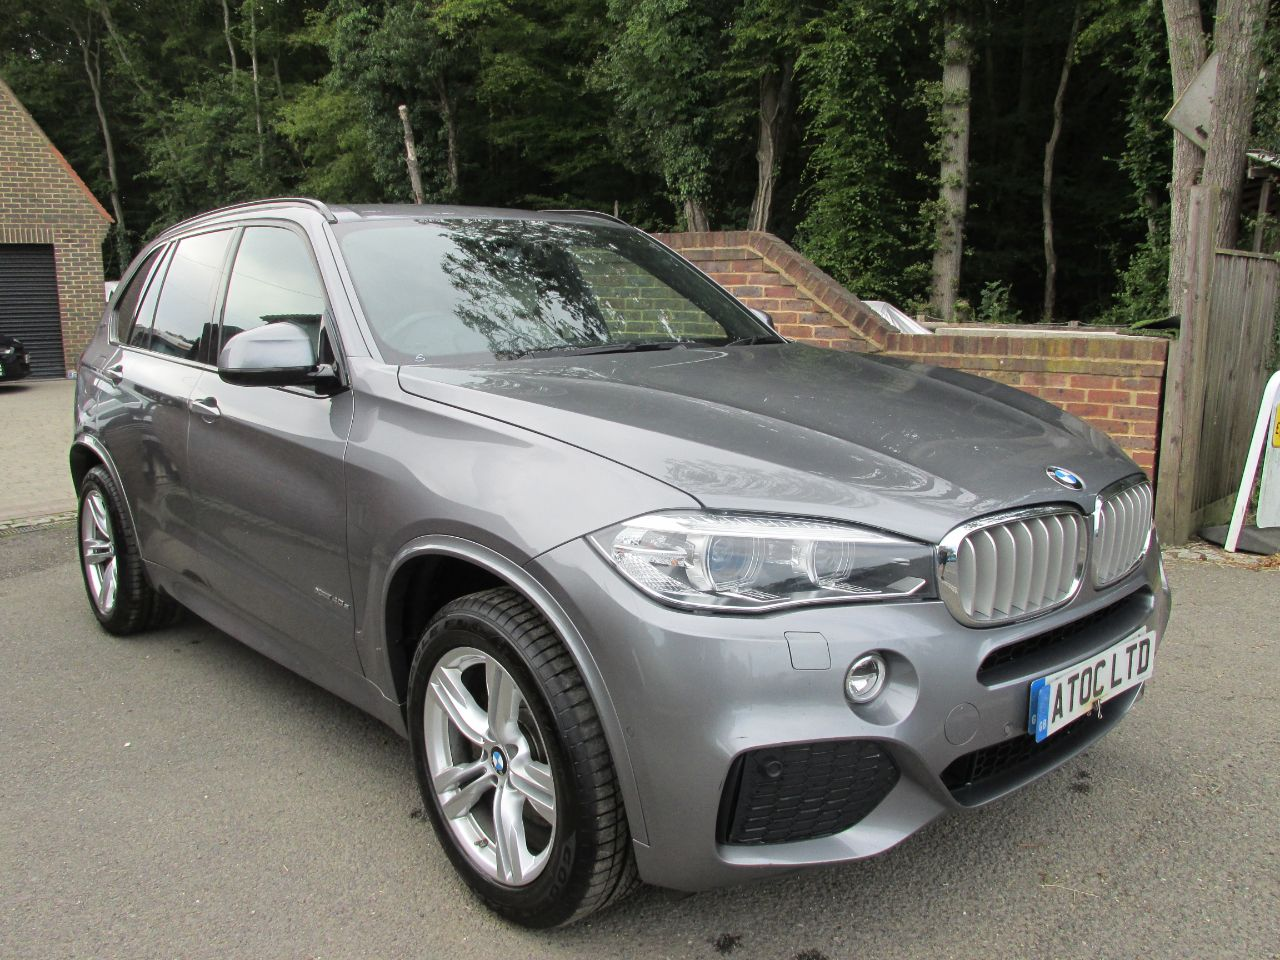 BMW X5 2.0 xDrive40e M Sport 5dr Auto + Zero Road Tax Band + VAT Qualifying Estate Petrol / Electric Hybrid Grey